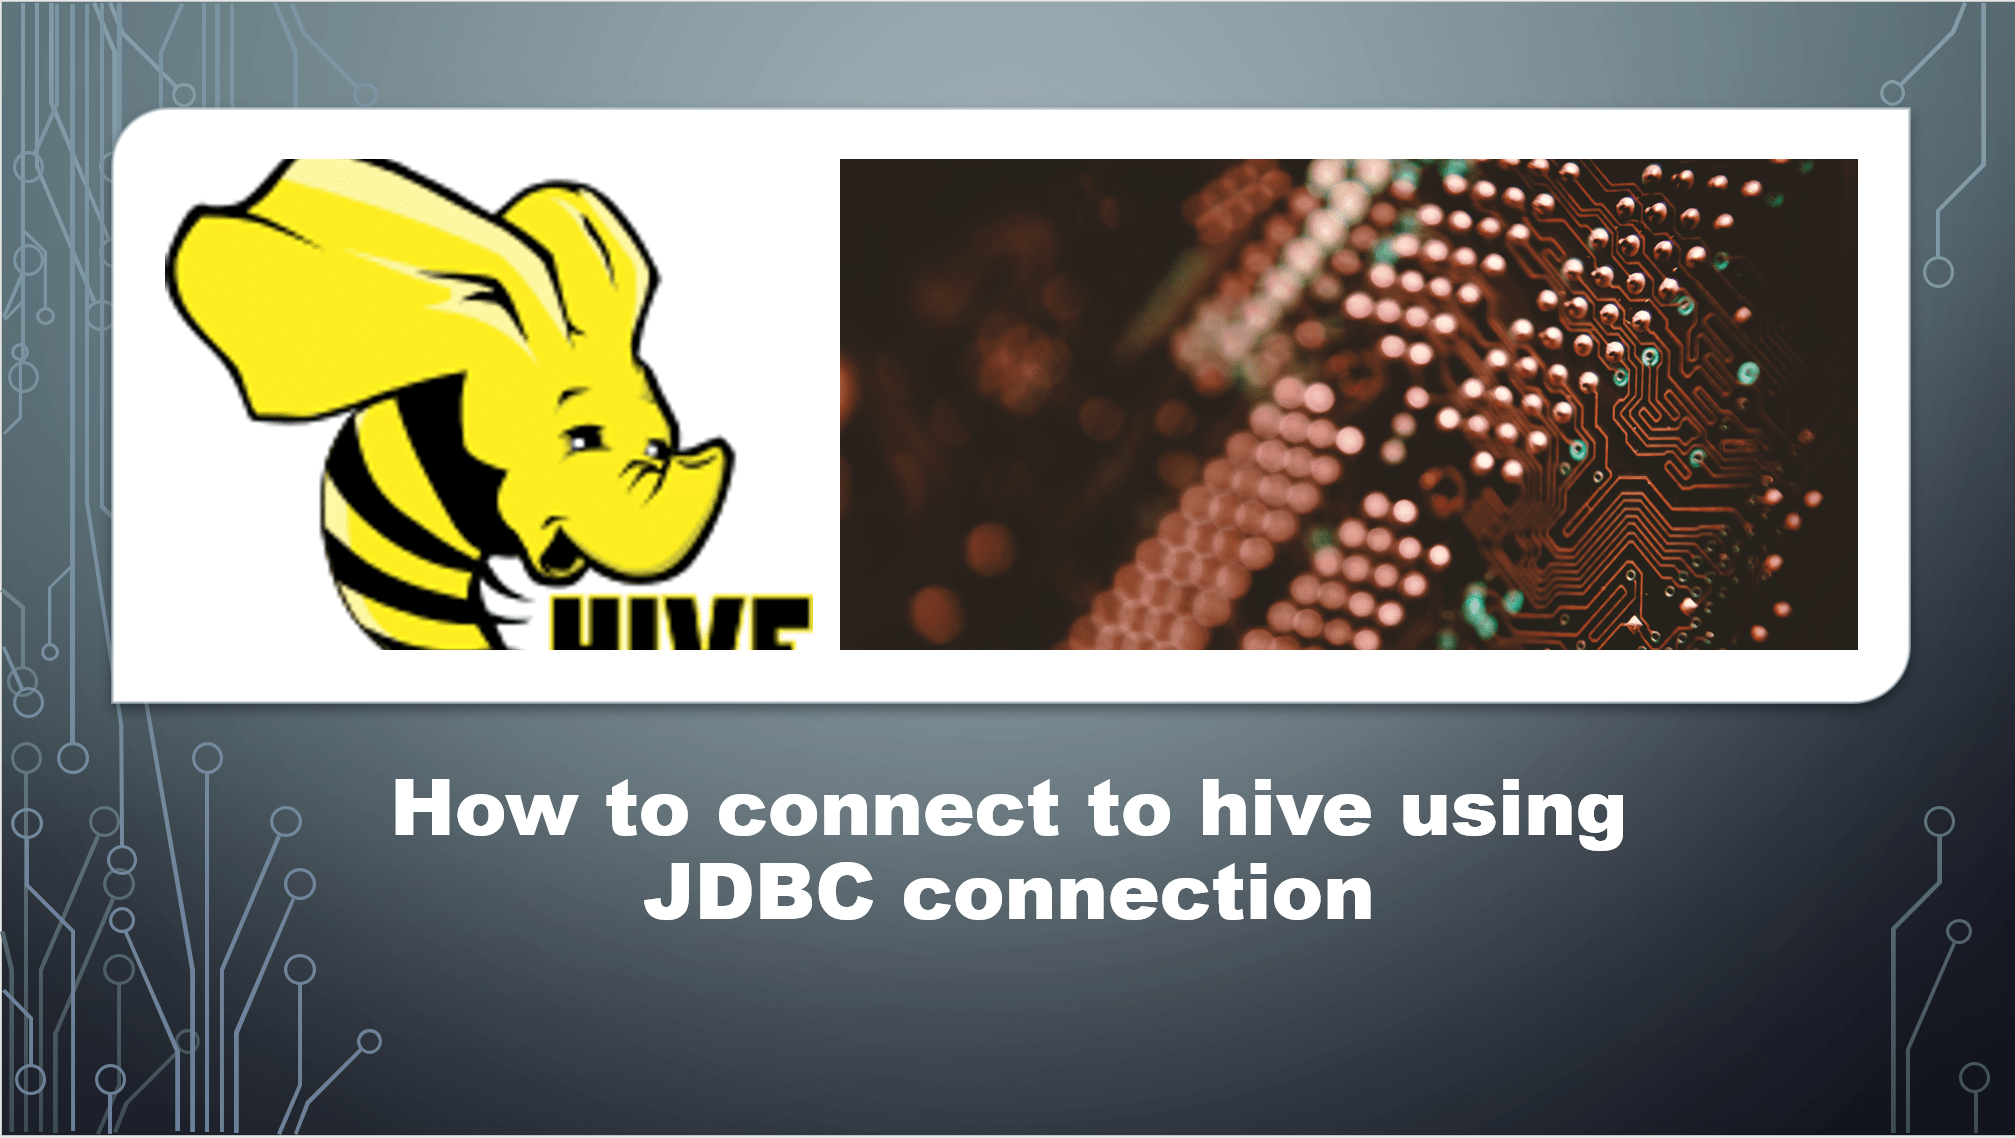 Connect to Hive using JDBC connection